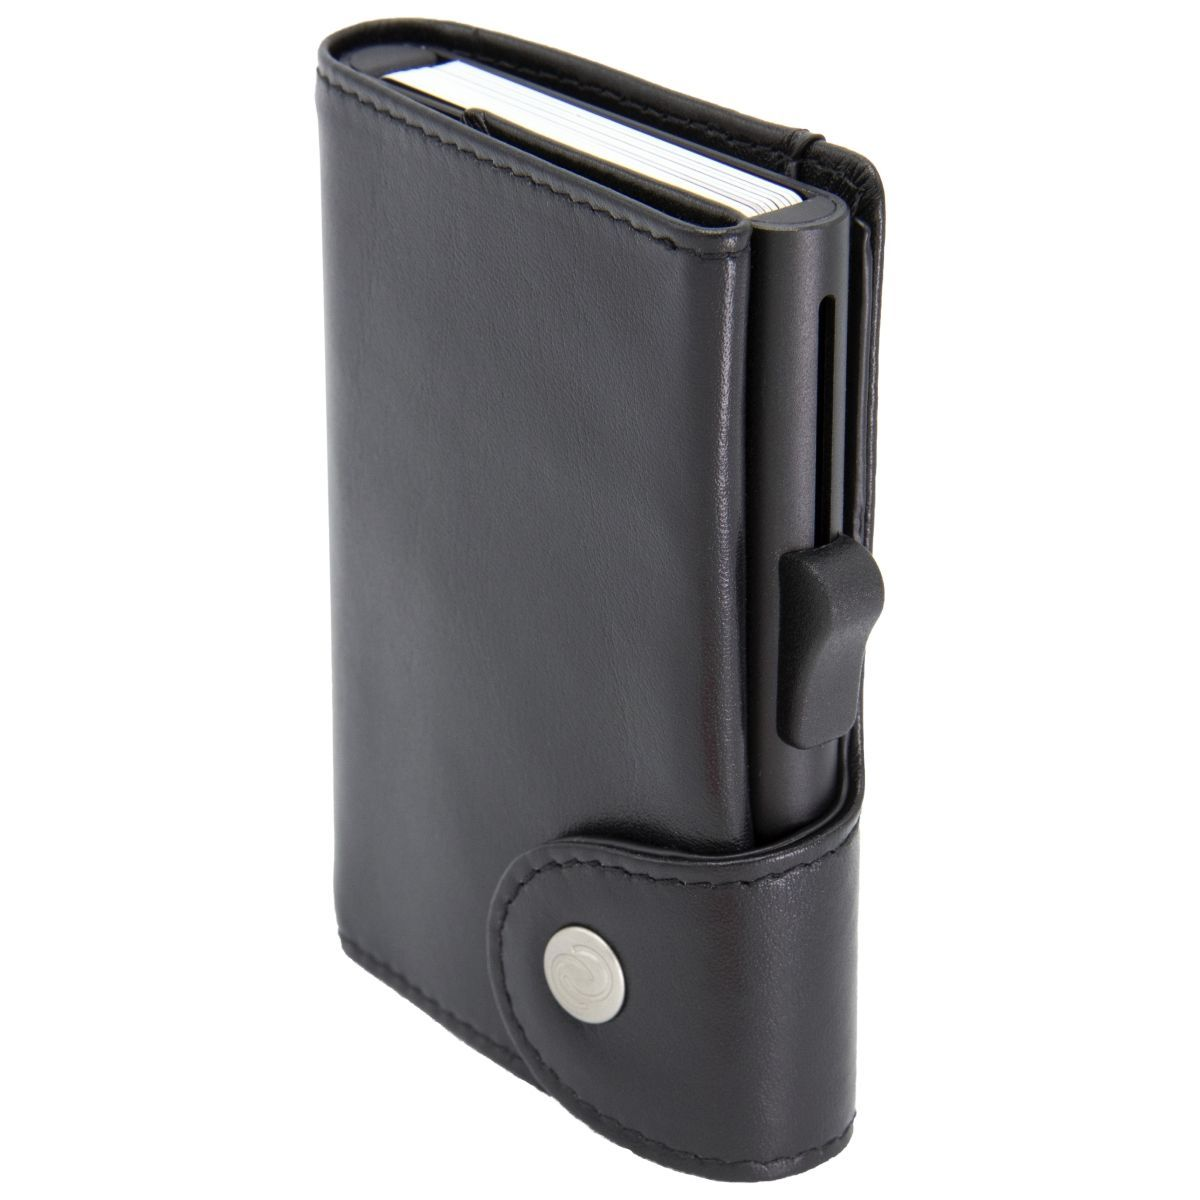 C-Secure XL Aluminum Card Holder with Genuine Leather and Coins Pocket - Black